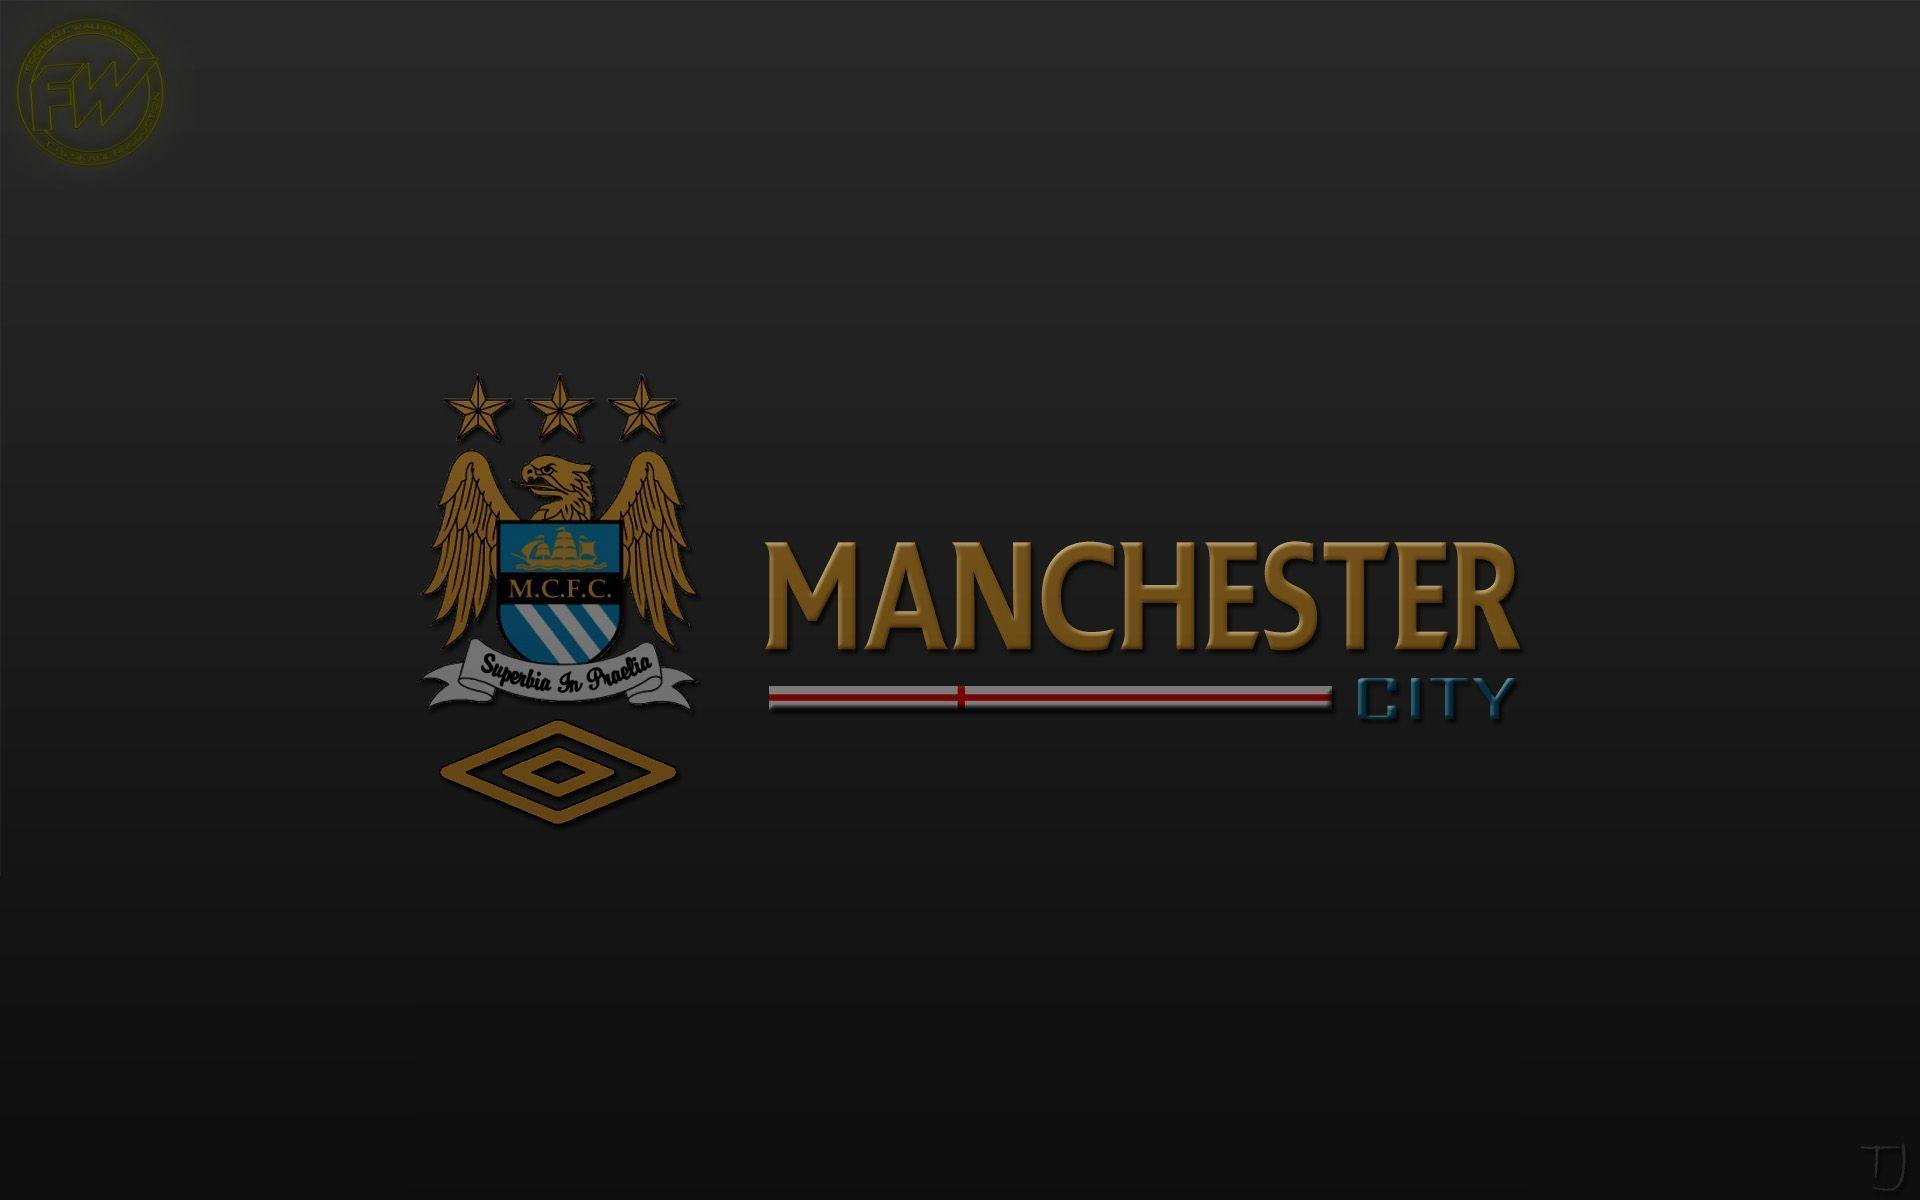 Manchester City Wallpaper 2017 Wallpaper Download 49: Man City Wallpapers Terbaru 2017